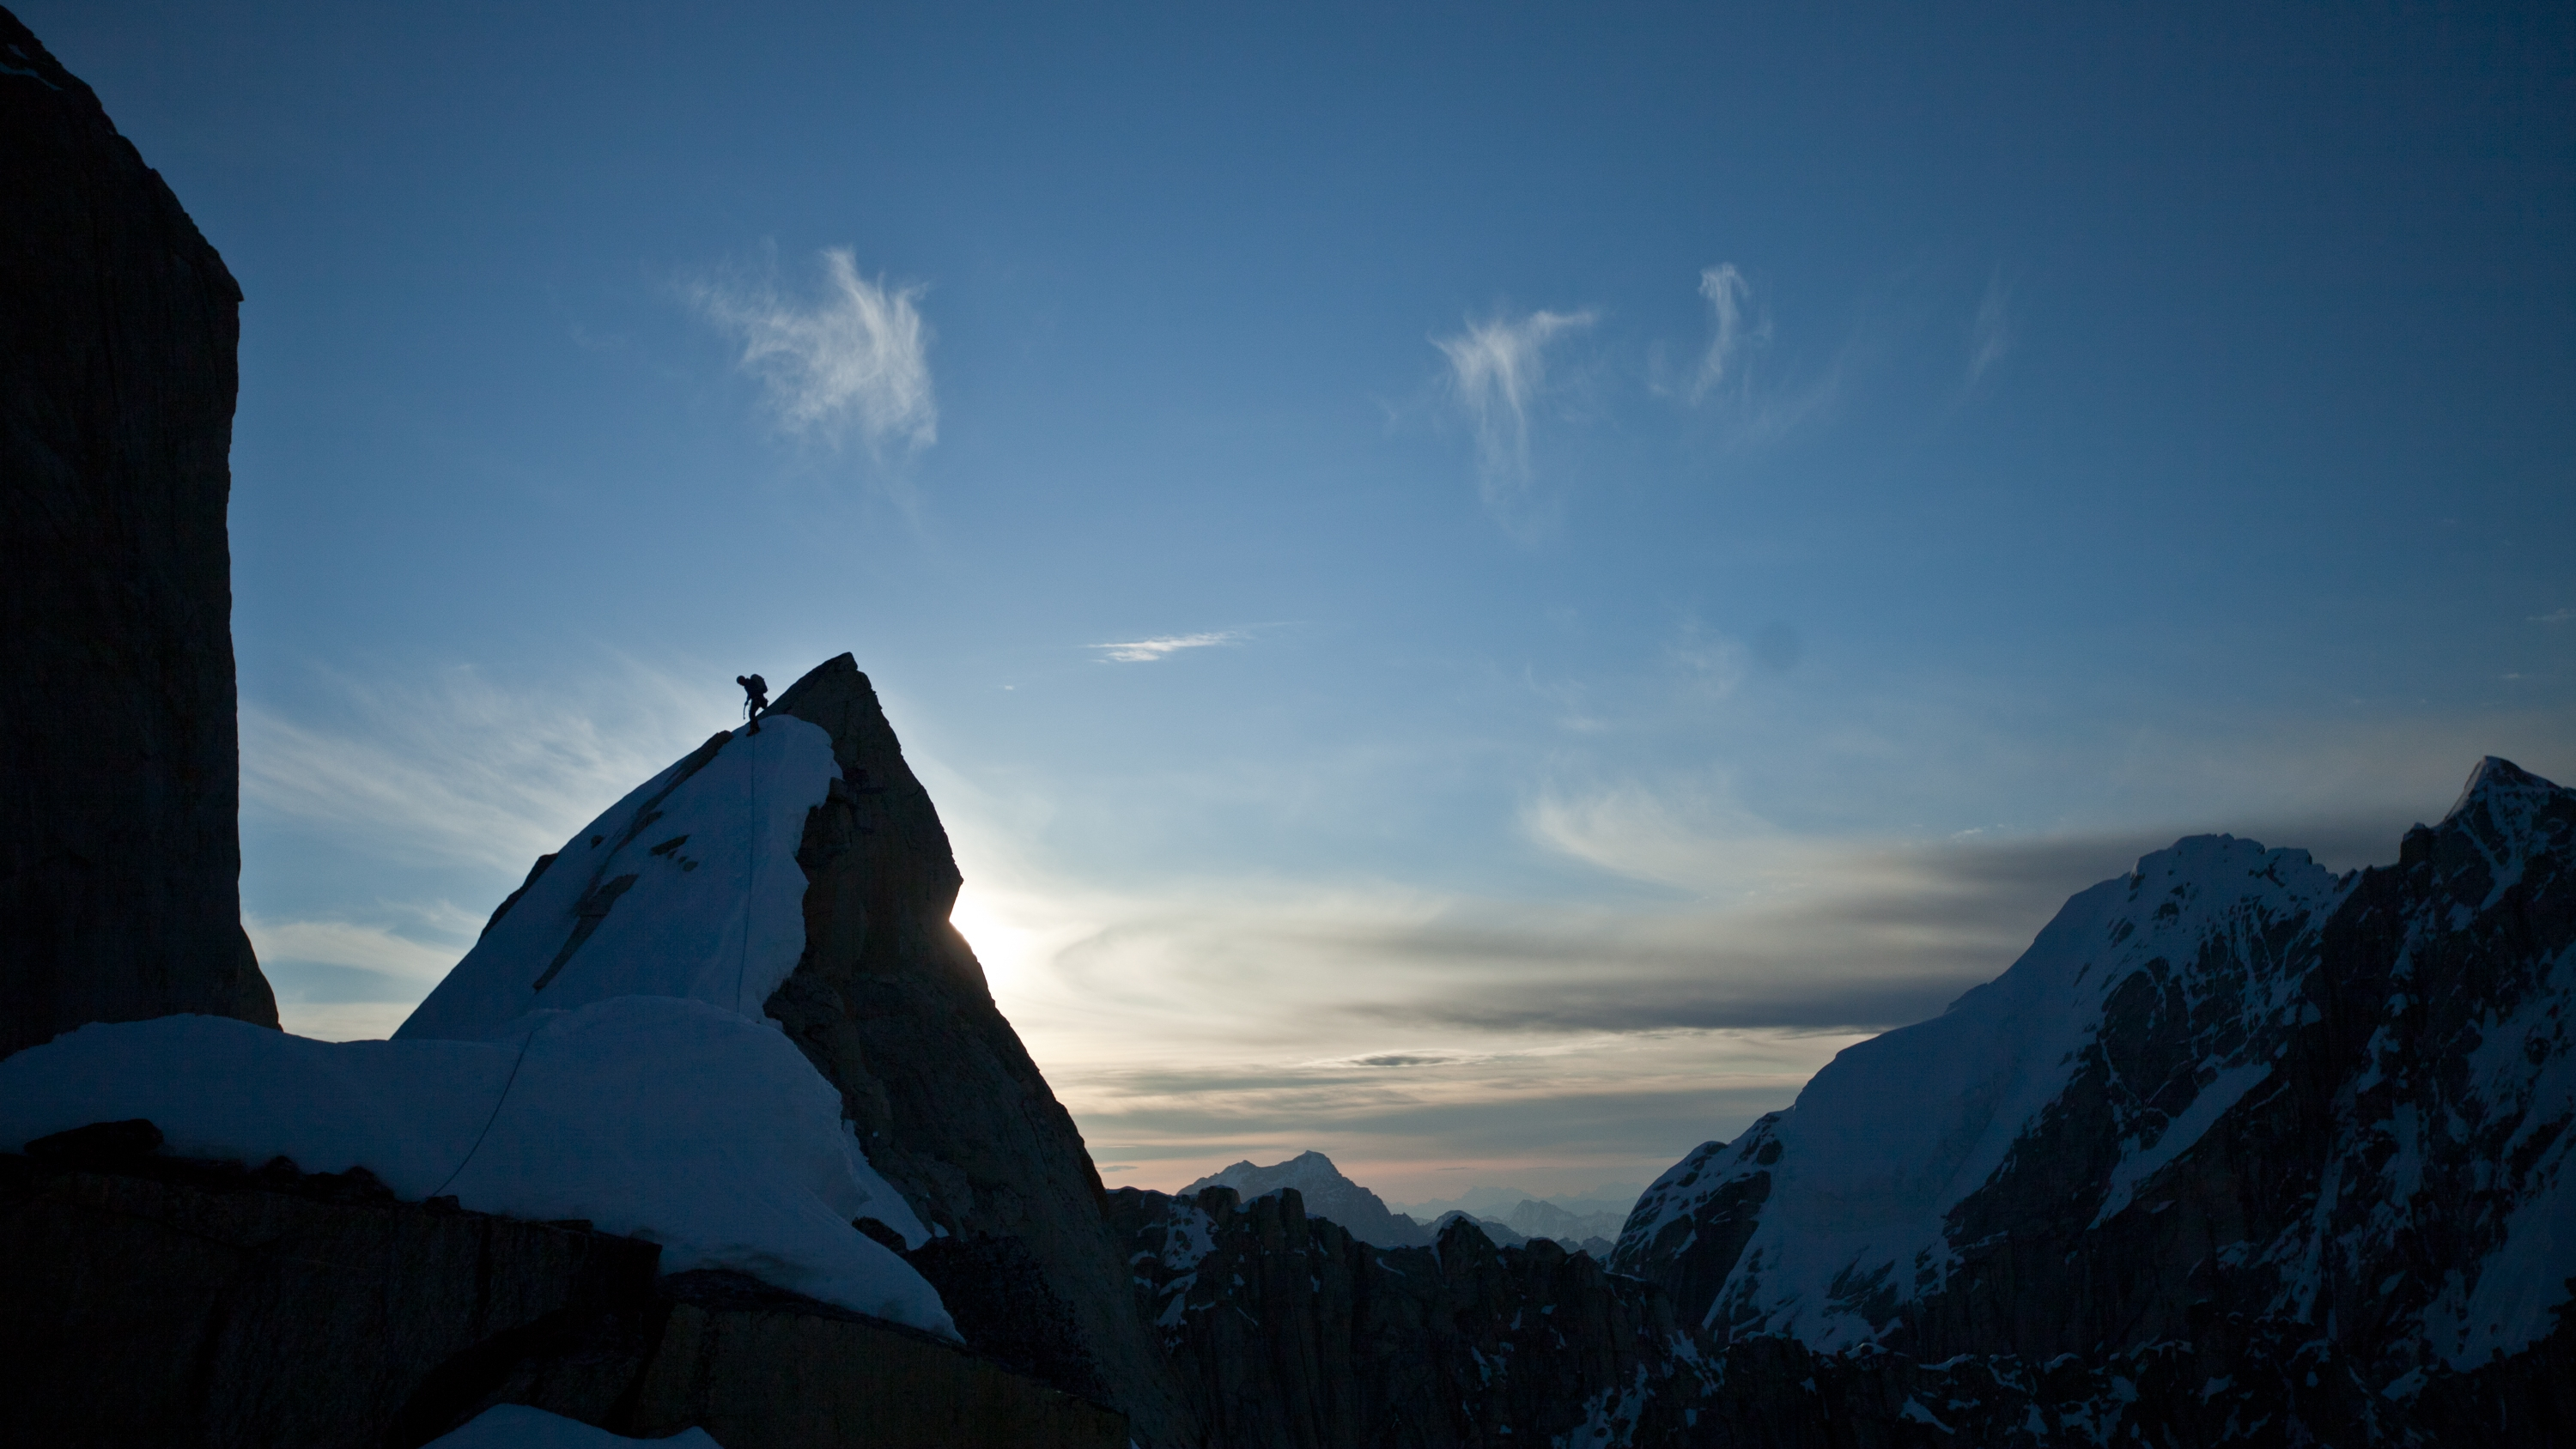 tooth-traverse_renan-ozturk-photo_2-7bd11e51-268d-47b7-9429-6735a23777dd